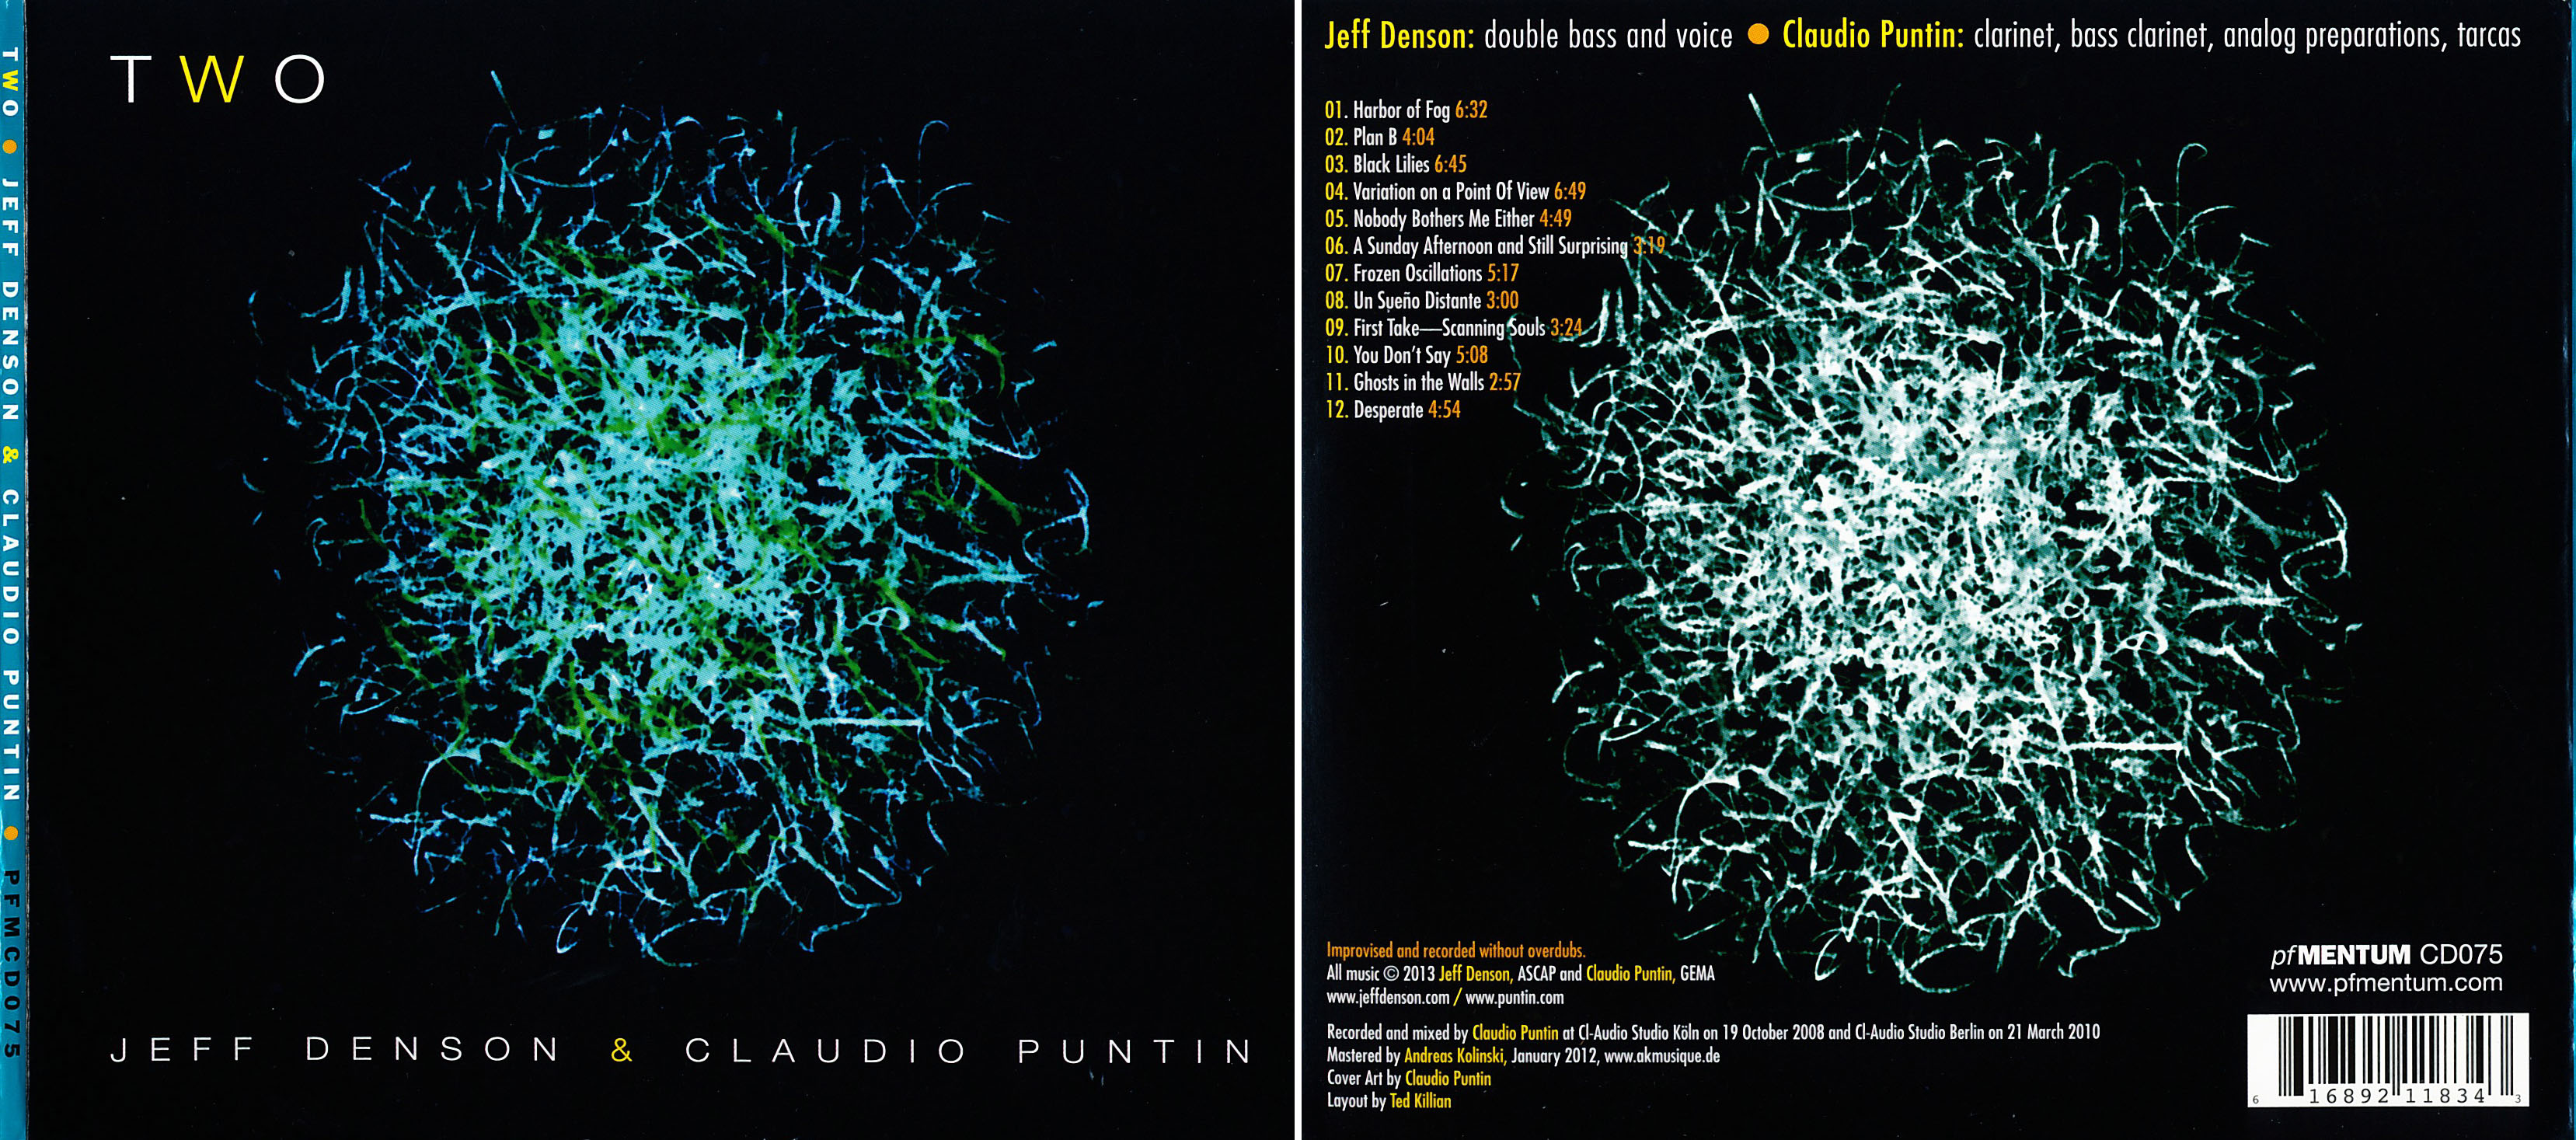 Jeff Denson & Claudio Puntin | Two